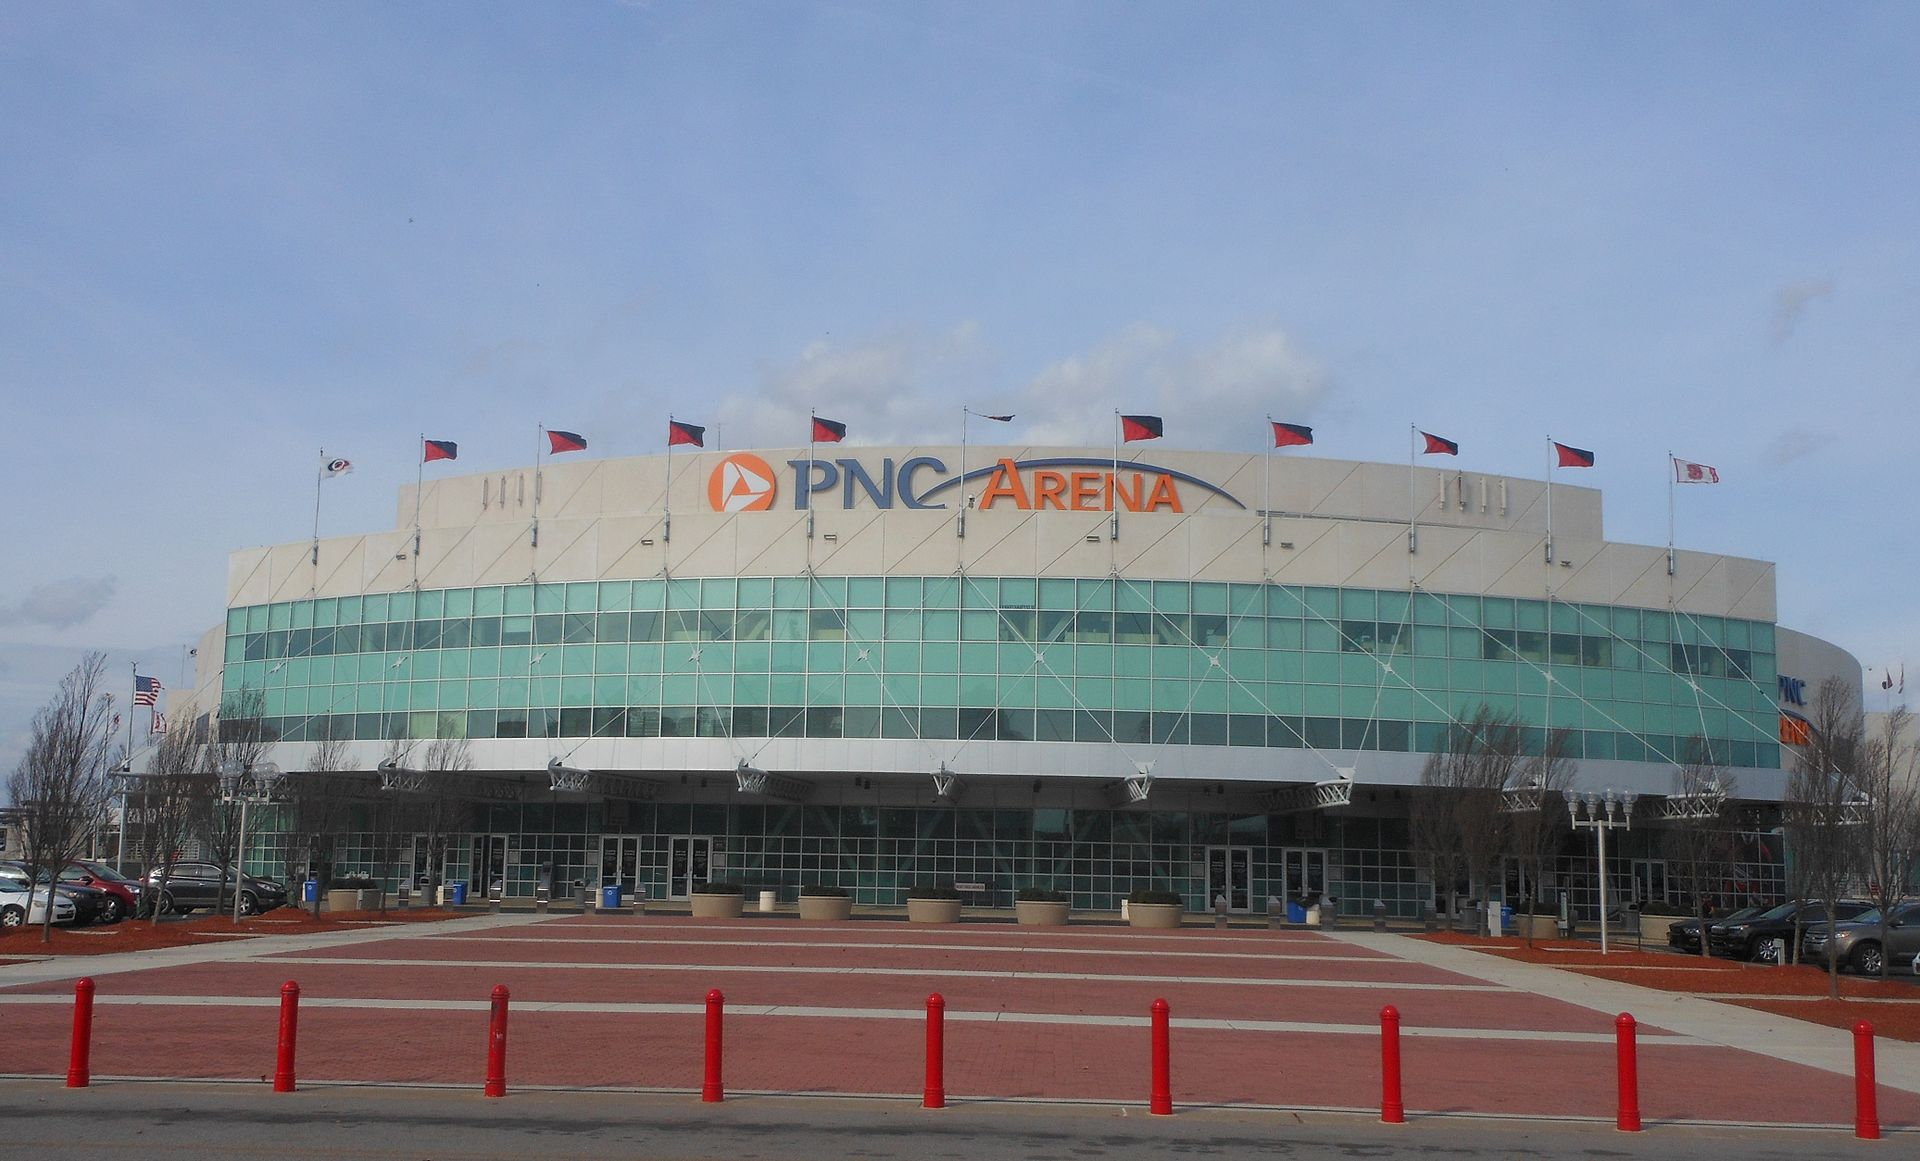 1920px-PNC_Arena_Raleigh.JPG